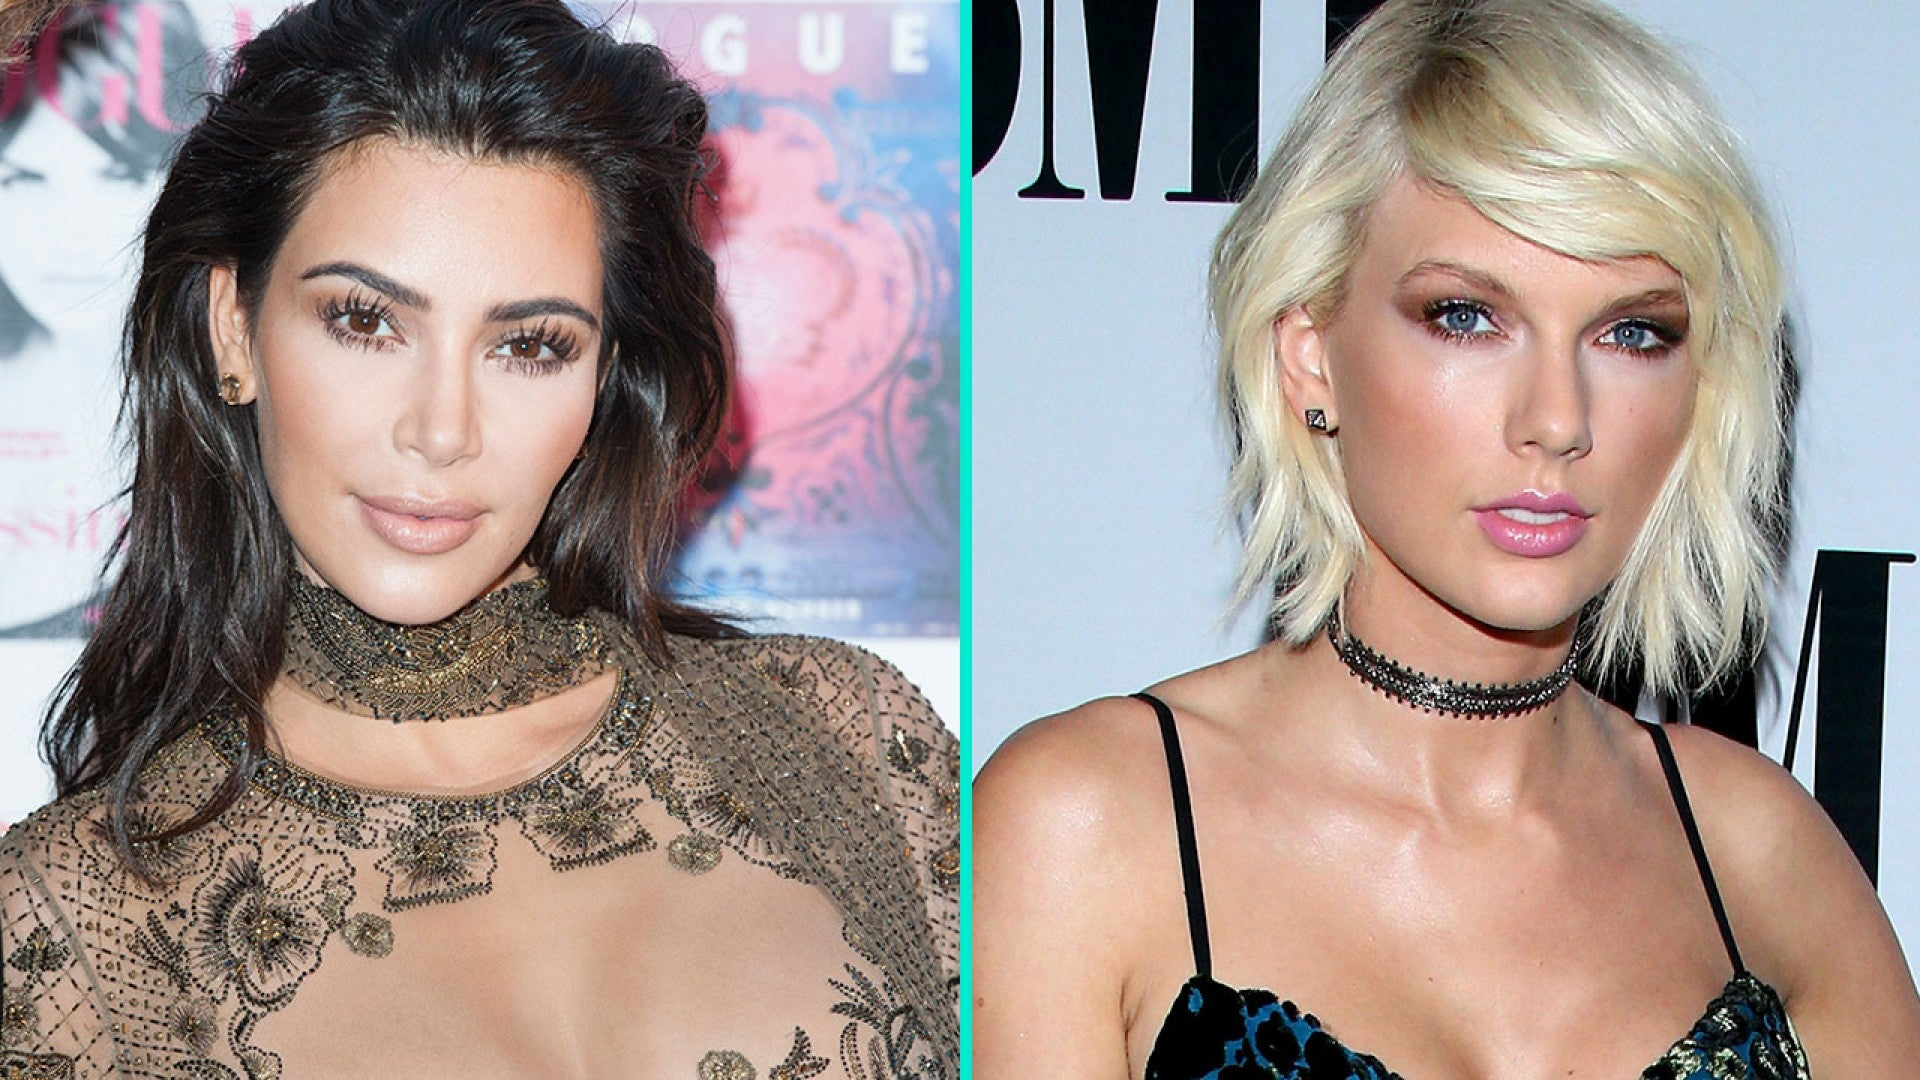 Kim Kardashian S Leak Of Taylor Swift S Phone Call Ignites Kimexposedtaylorparty Trend See Fans Reactions Entertainment Tonight